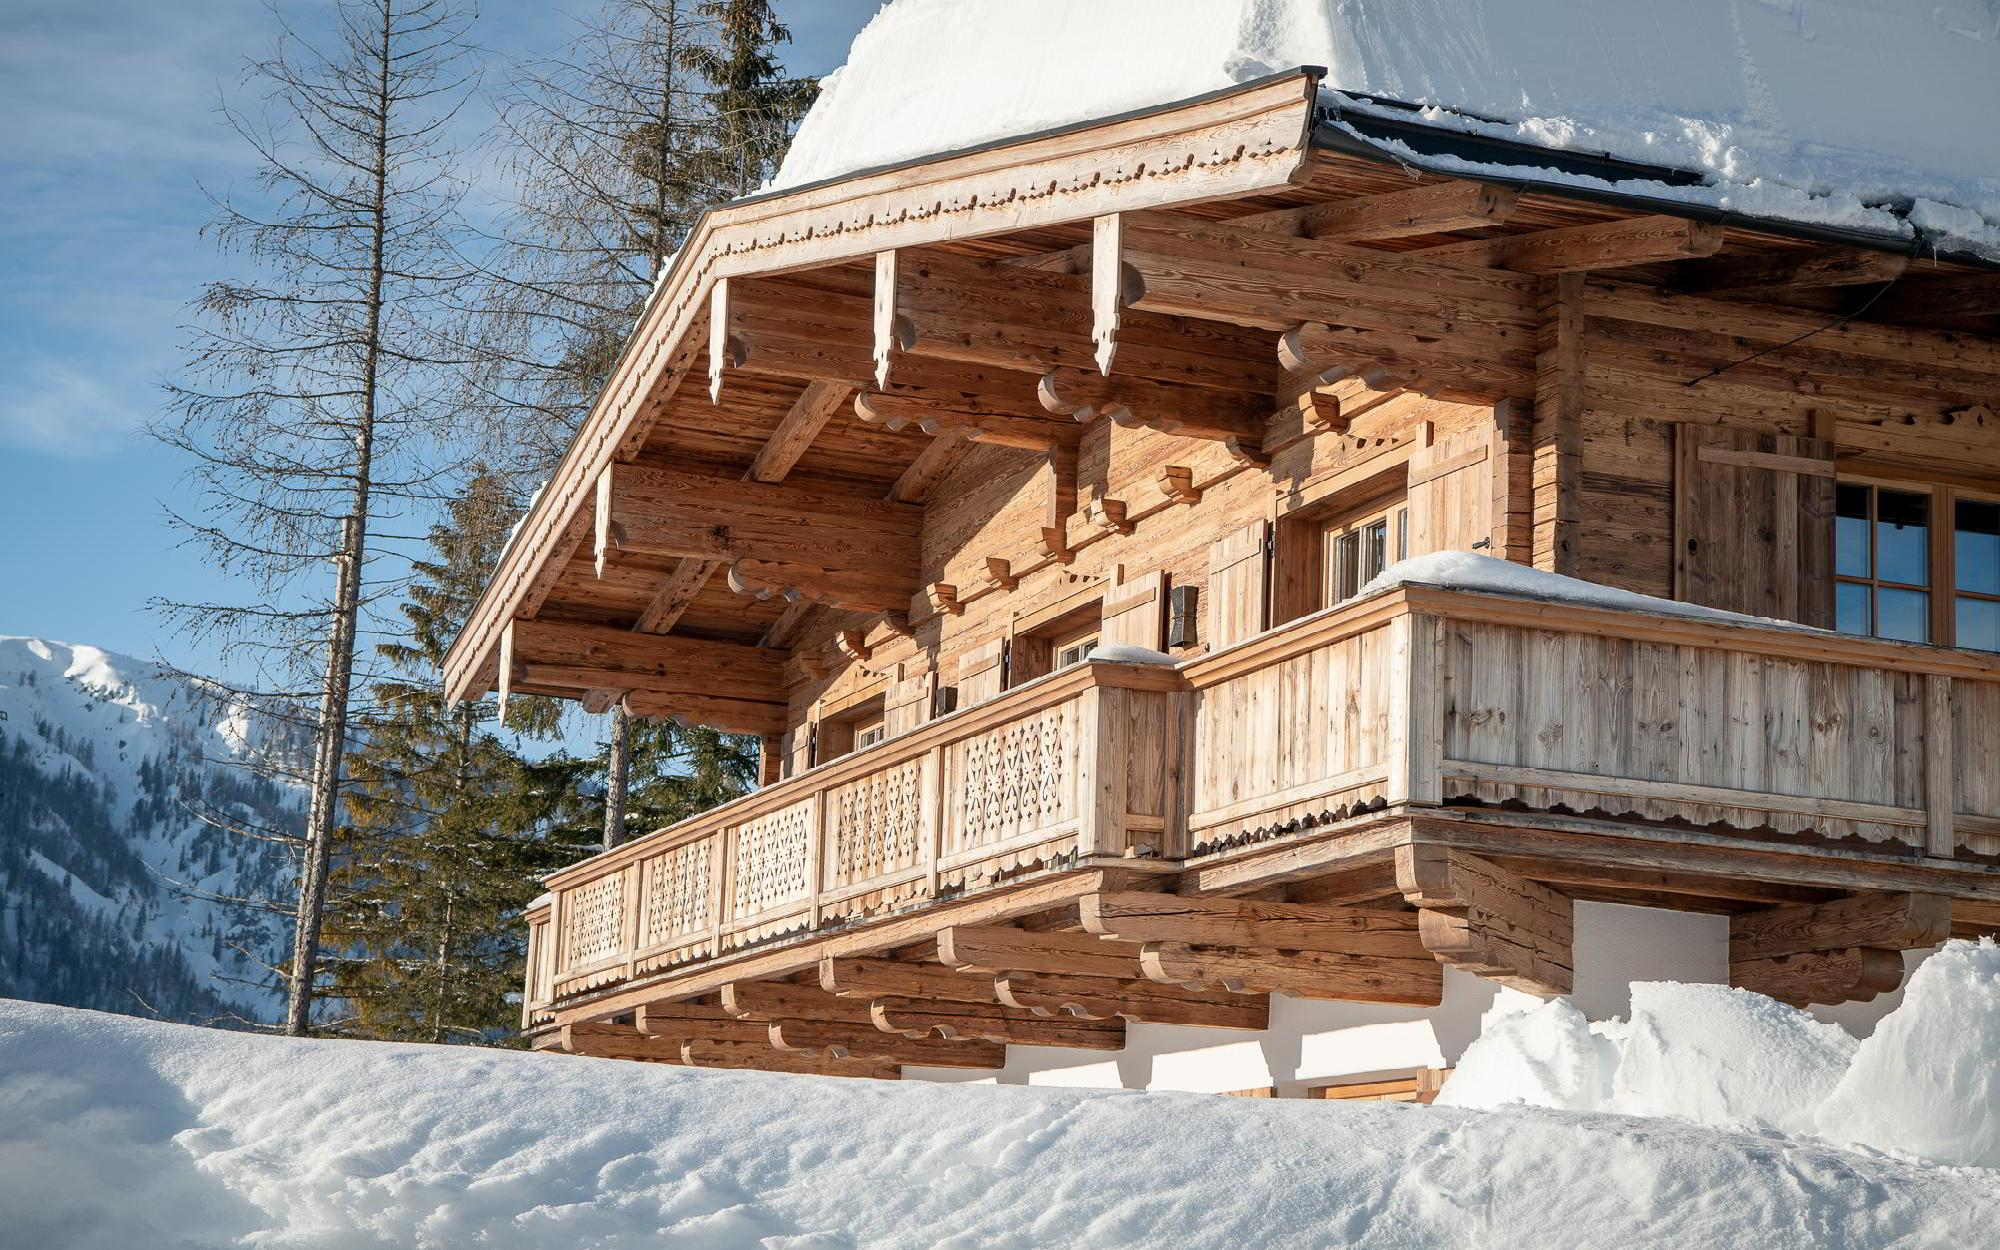 High-quality Tyrolean chalet with secondary dedication For Sale - St. Ulrich am Pillersee